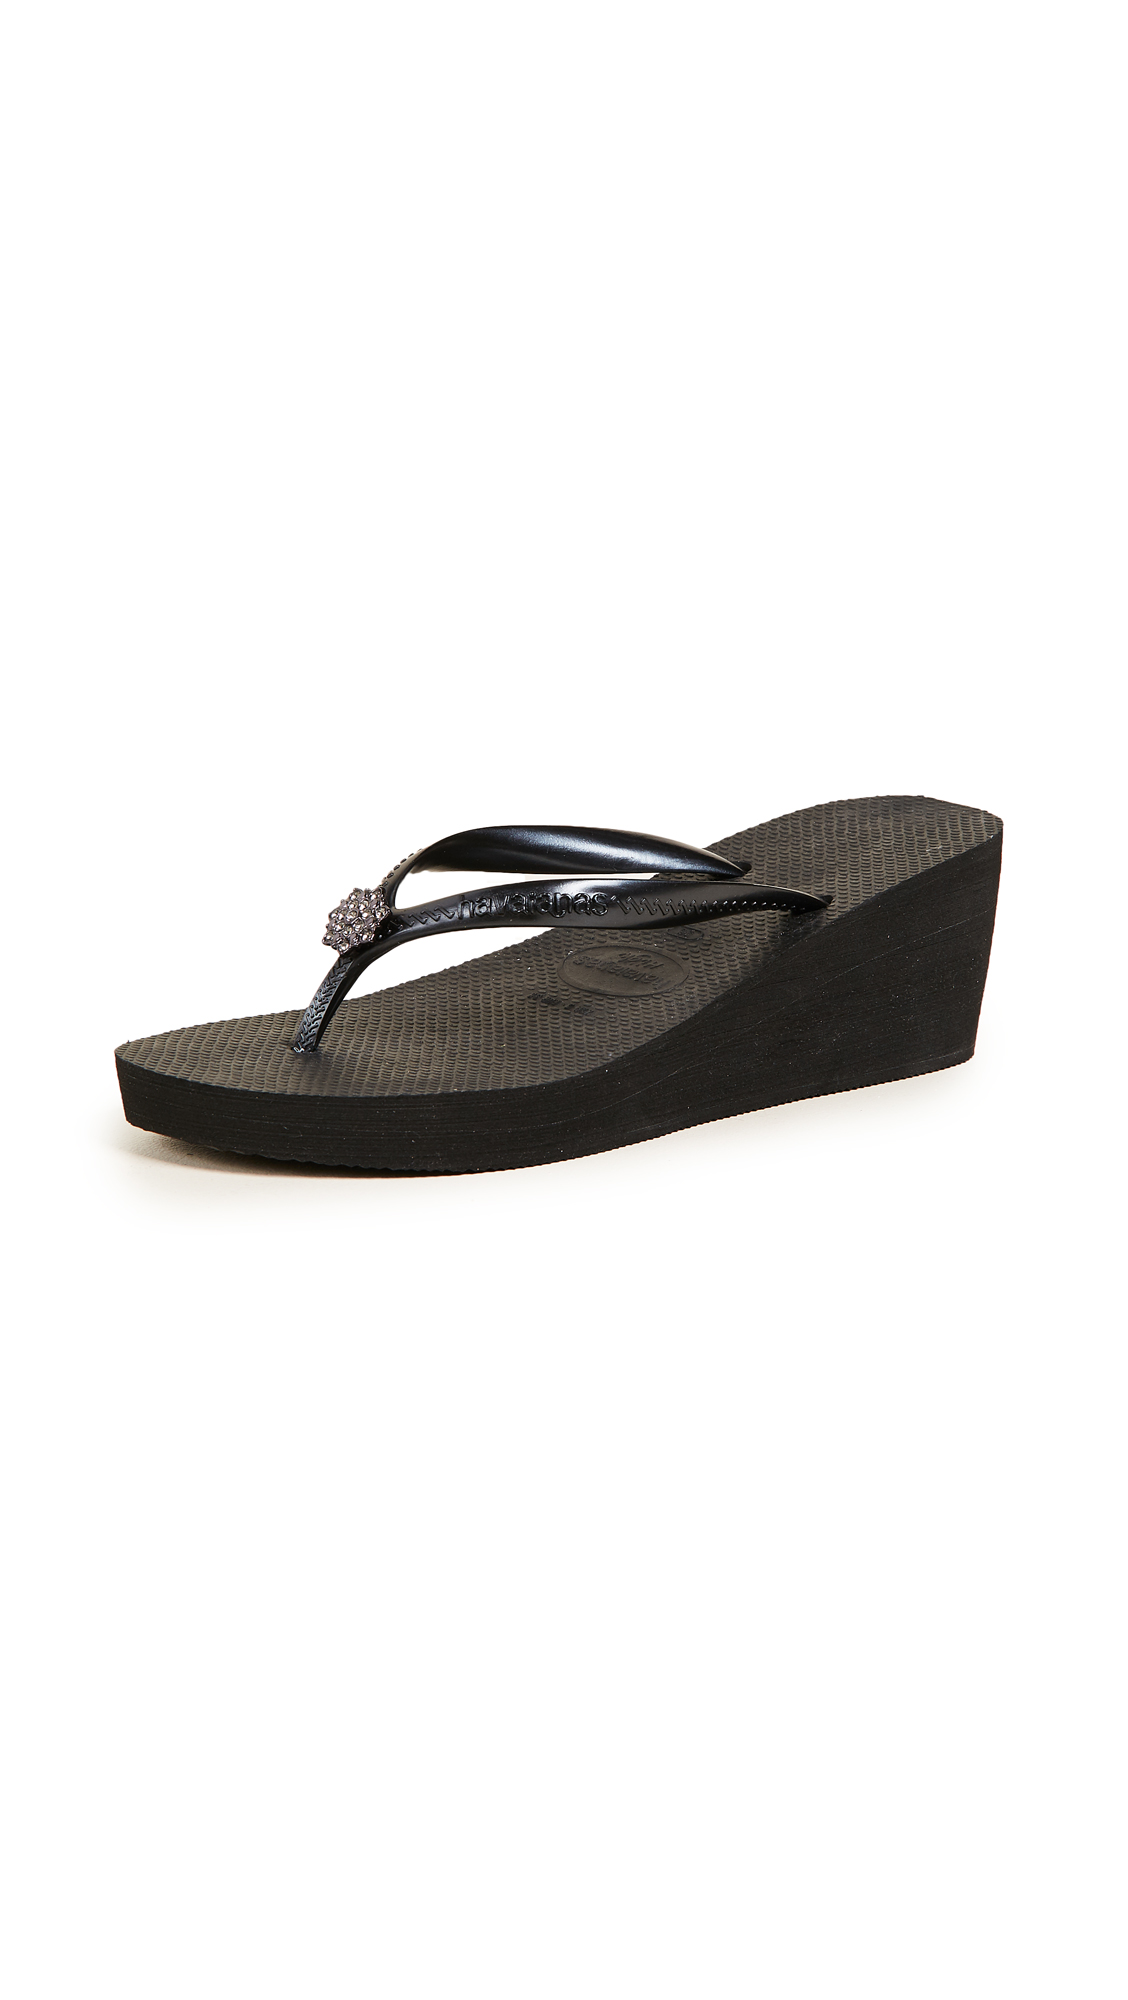 Havaianas High Fashion Poem Wedge Sandals - Black